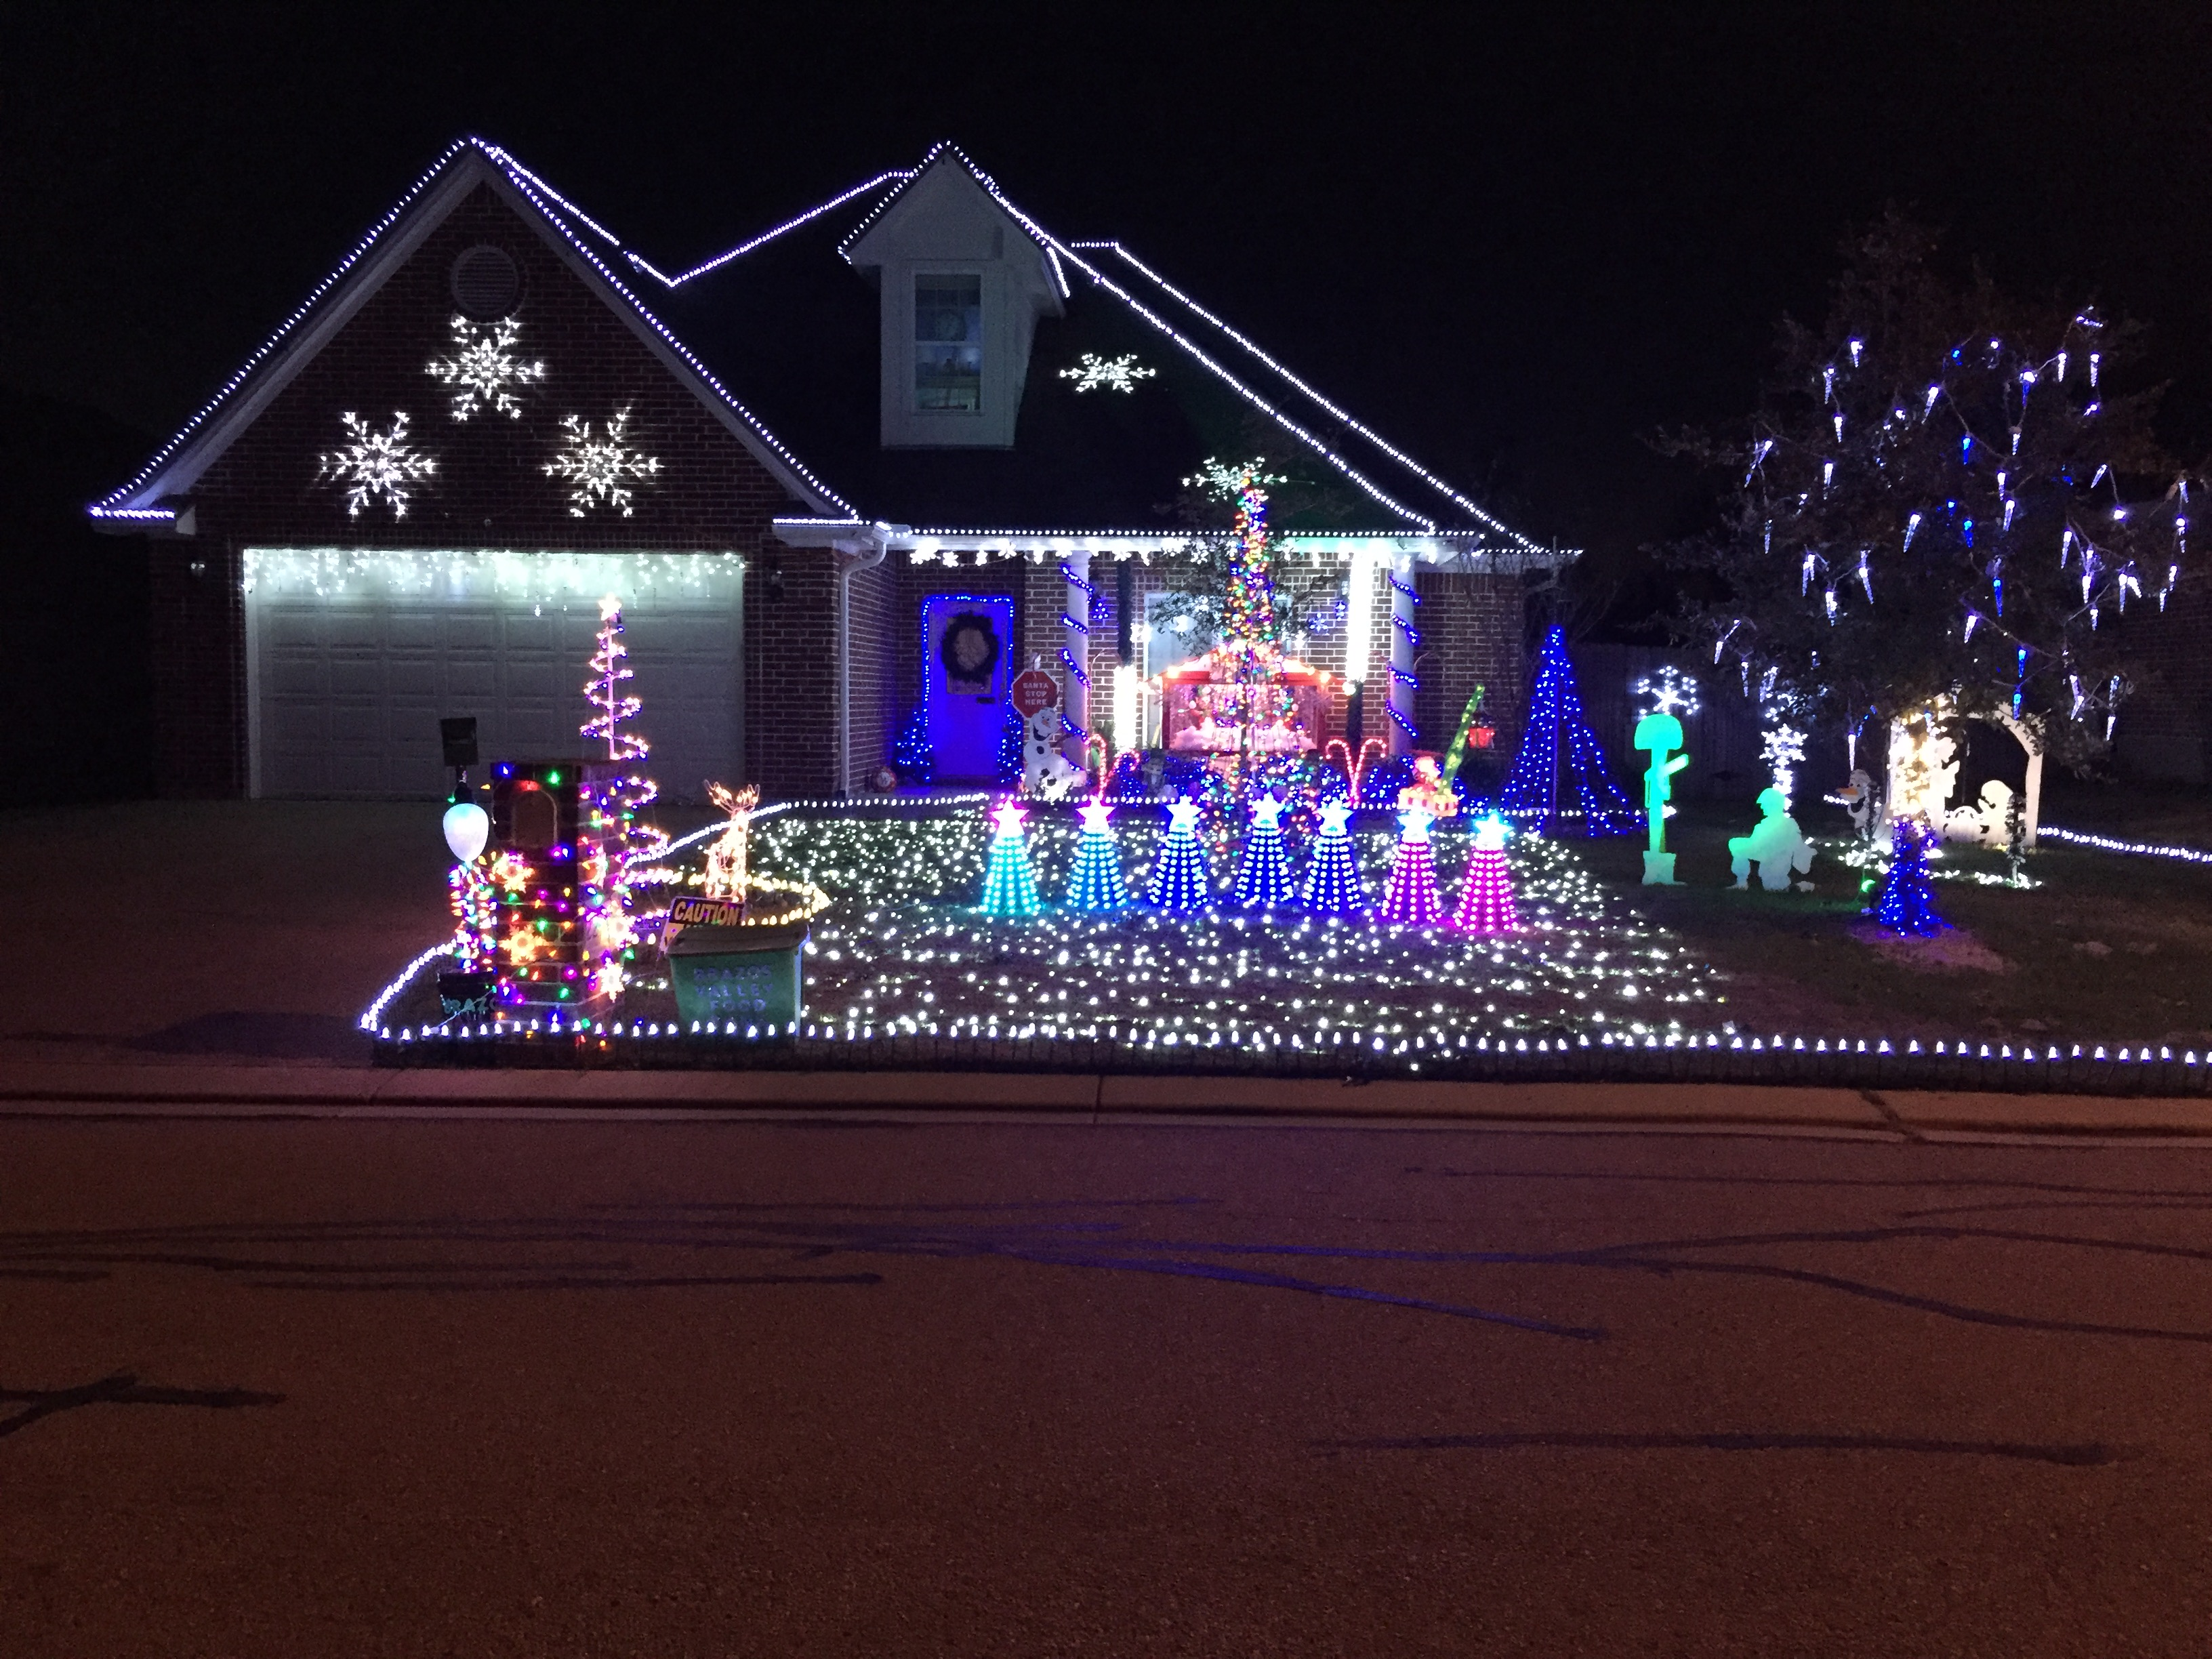 Carlisle Christmas Lights 2020 Where to see the best Christmas lights in the Brazos Valley